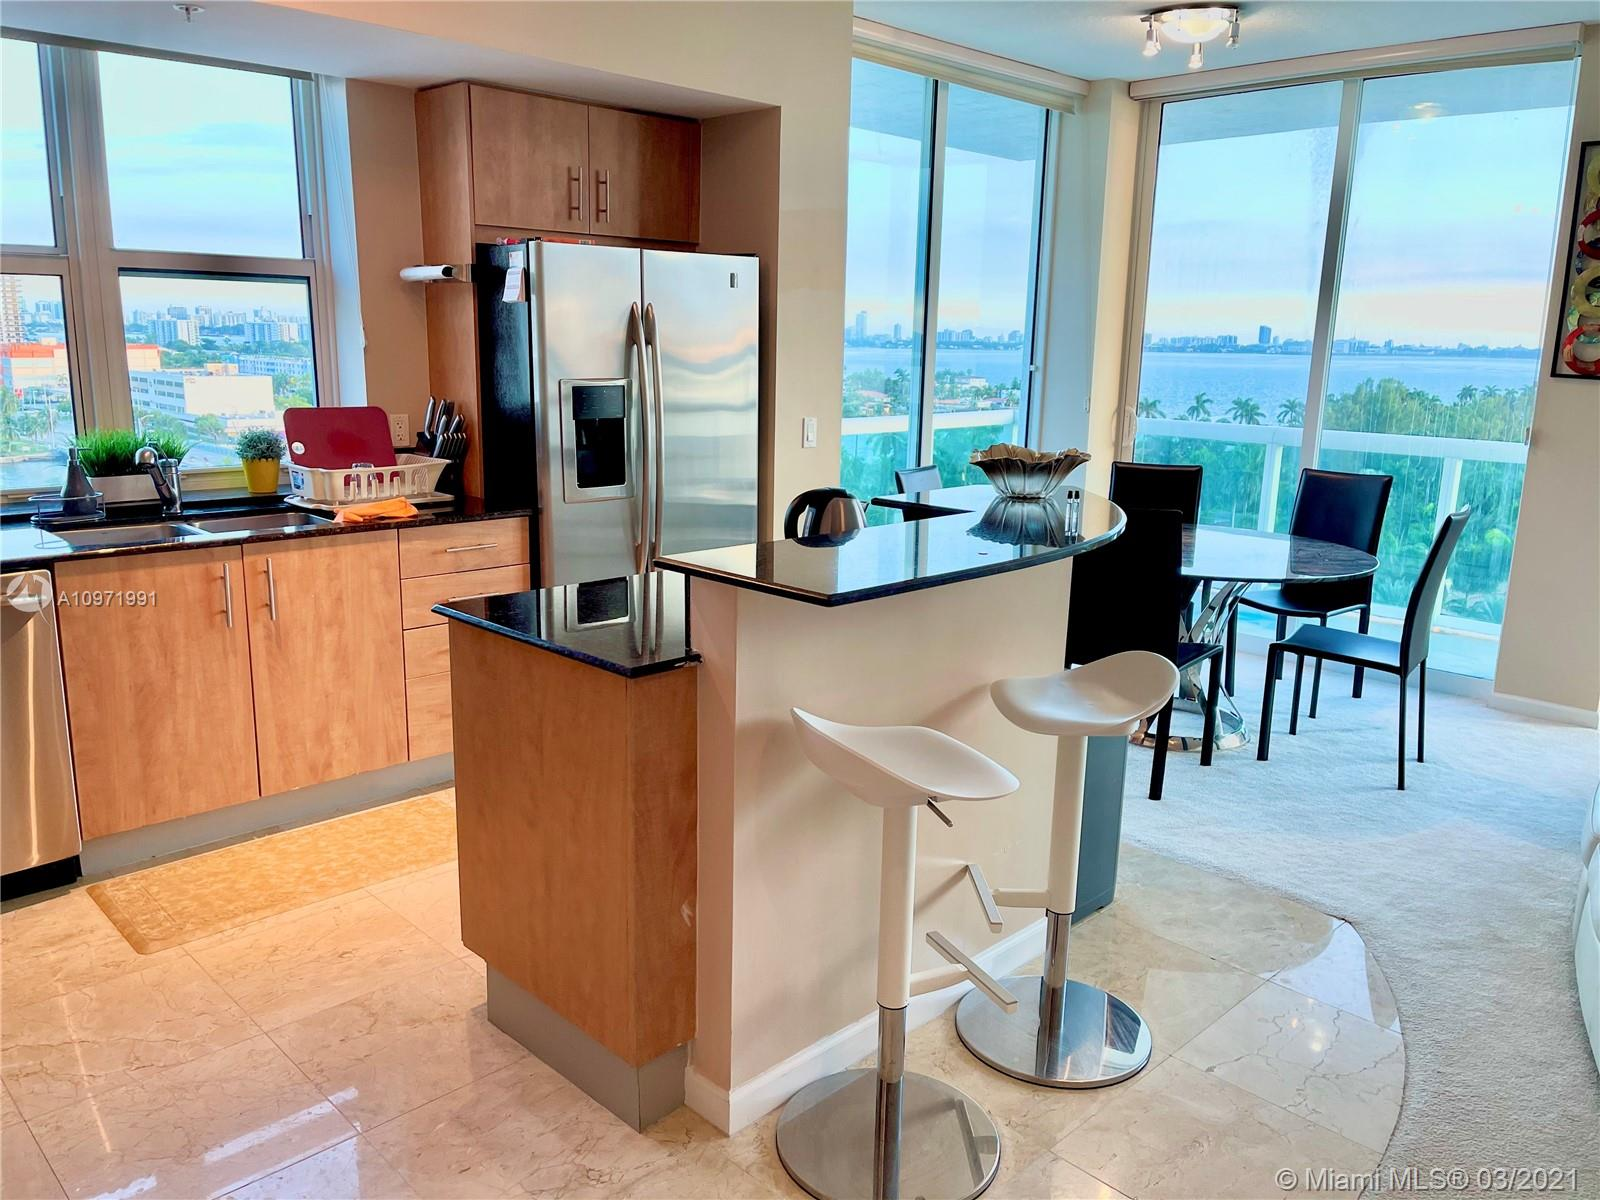 Fully furnished! Perfect location, amazing view of pool area and Biscayne Bay. 2 beds, 2 baths (fit 6 people) Build in walking closets, fully equipped kitchen, washer-dryer in unit. Impact glass balcony and windows. 1 parking space, plus 24/7/365 free valet service to residents and guests. Gym, pool. 24h security